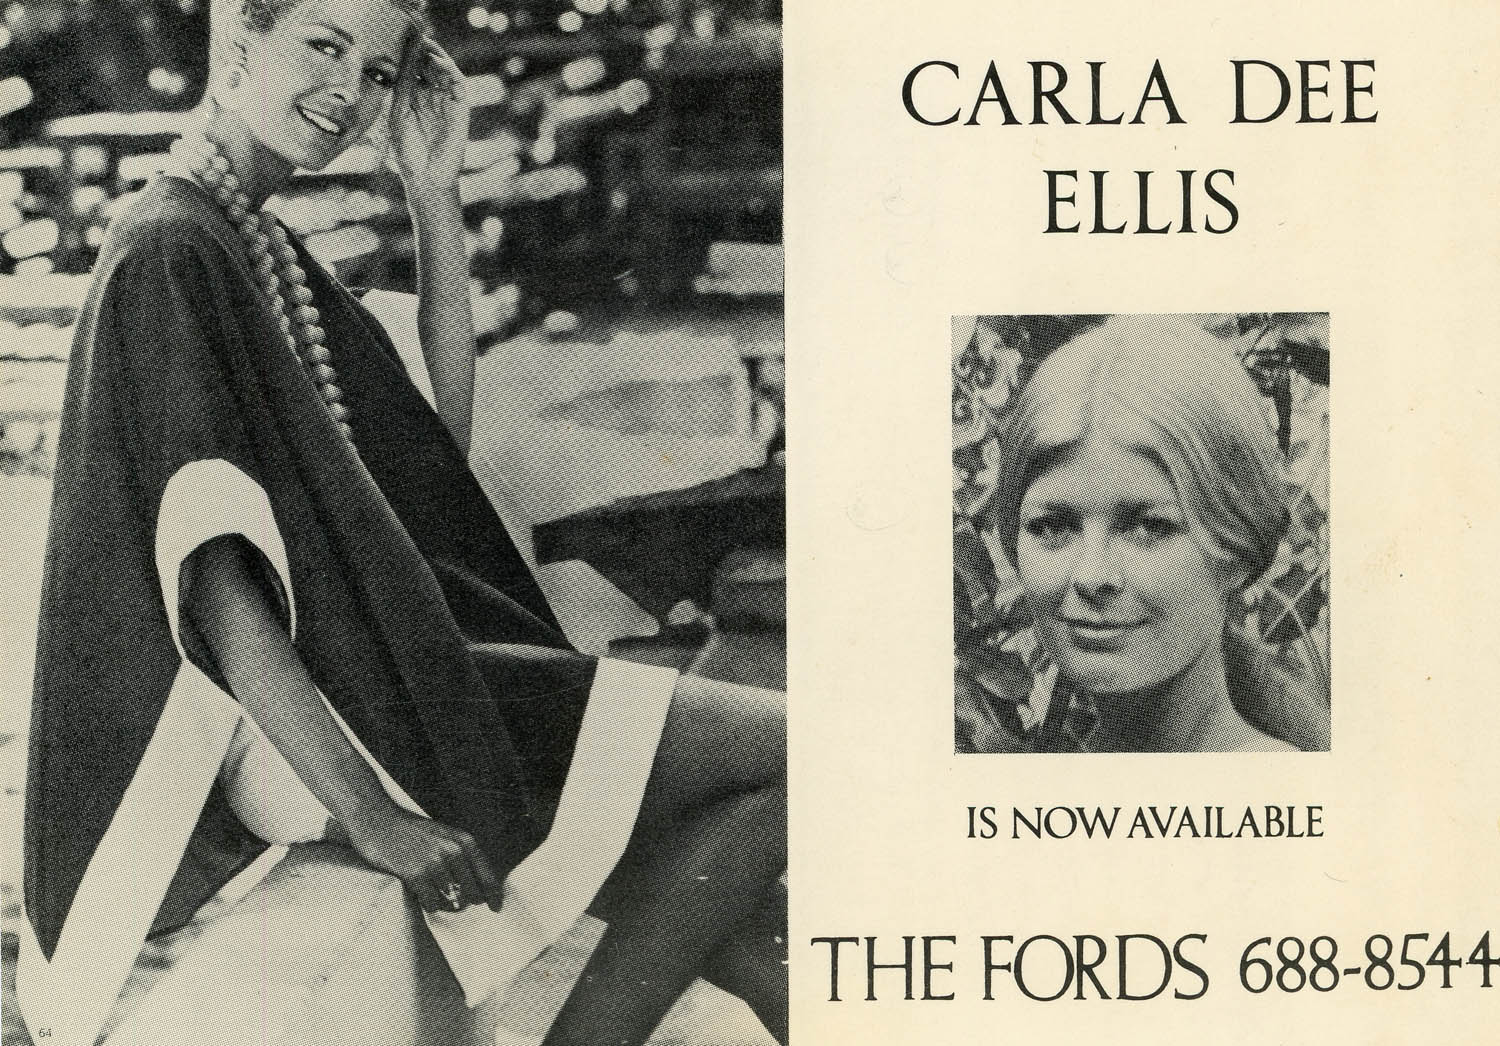 Ford Modeling Agency postcard for Carla, c. 1971.